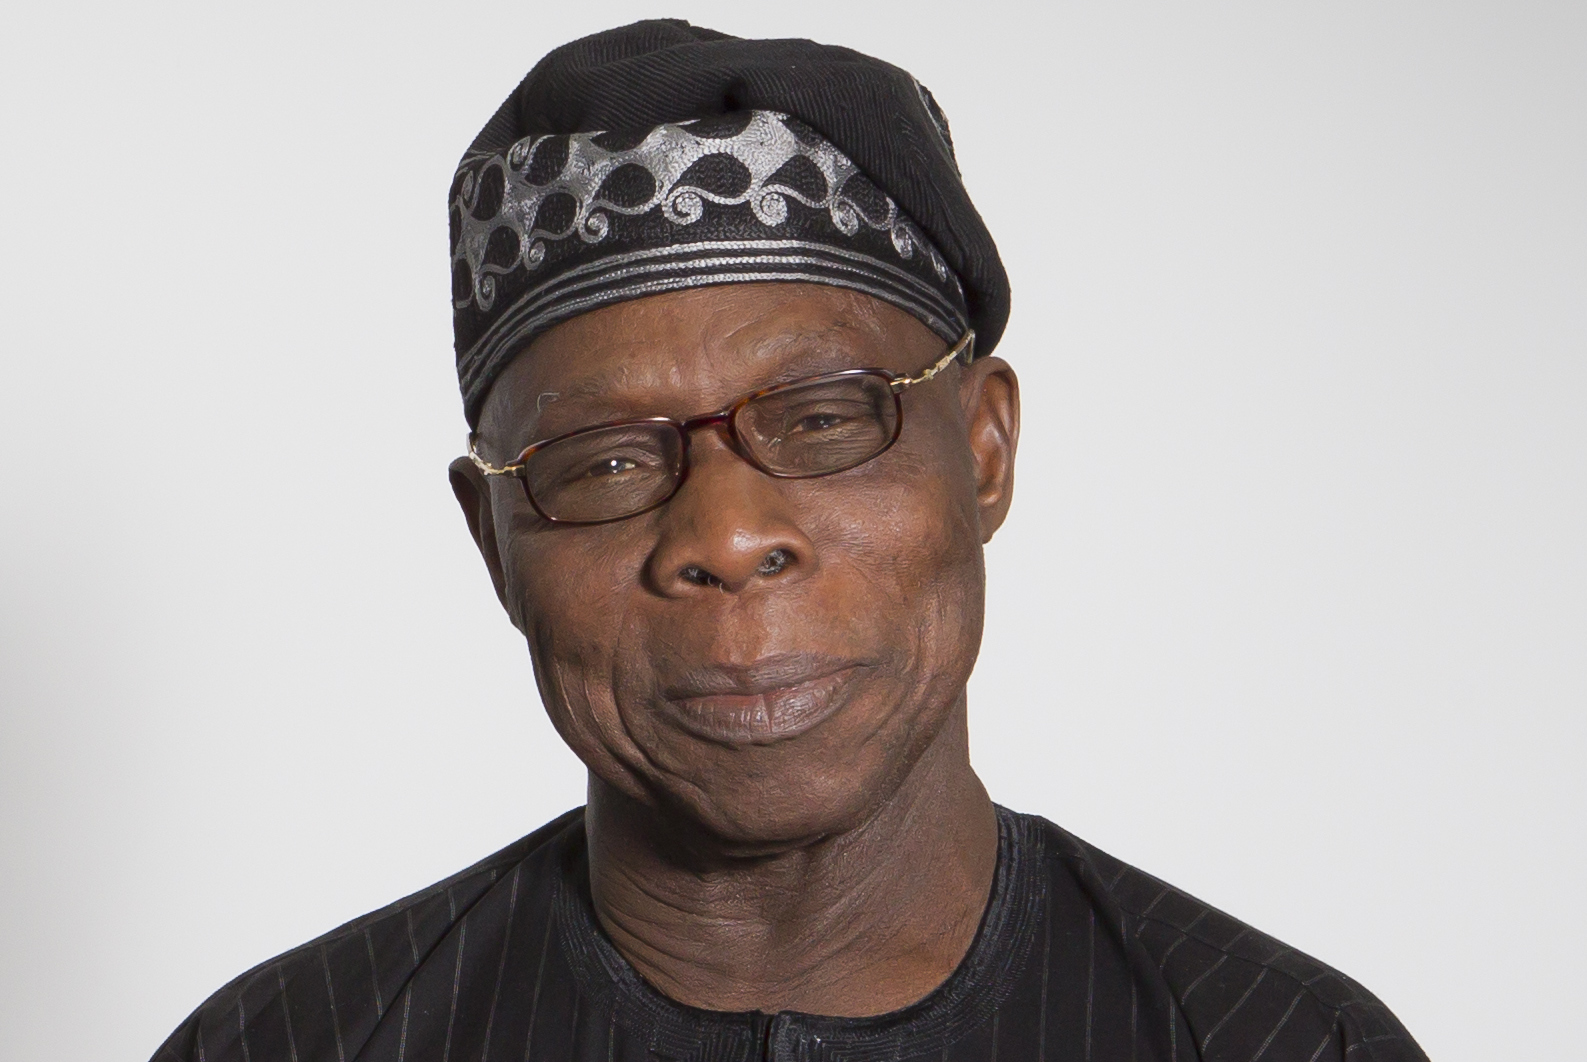 Nigeria Reps: Obasanjo Is The Grandfather Of Corruption